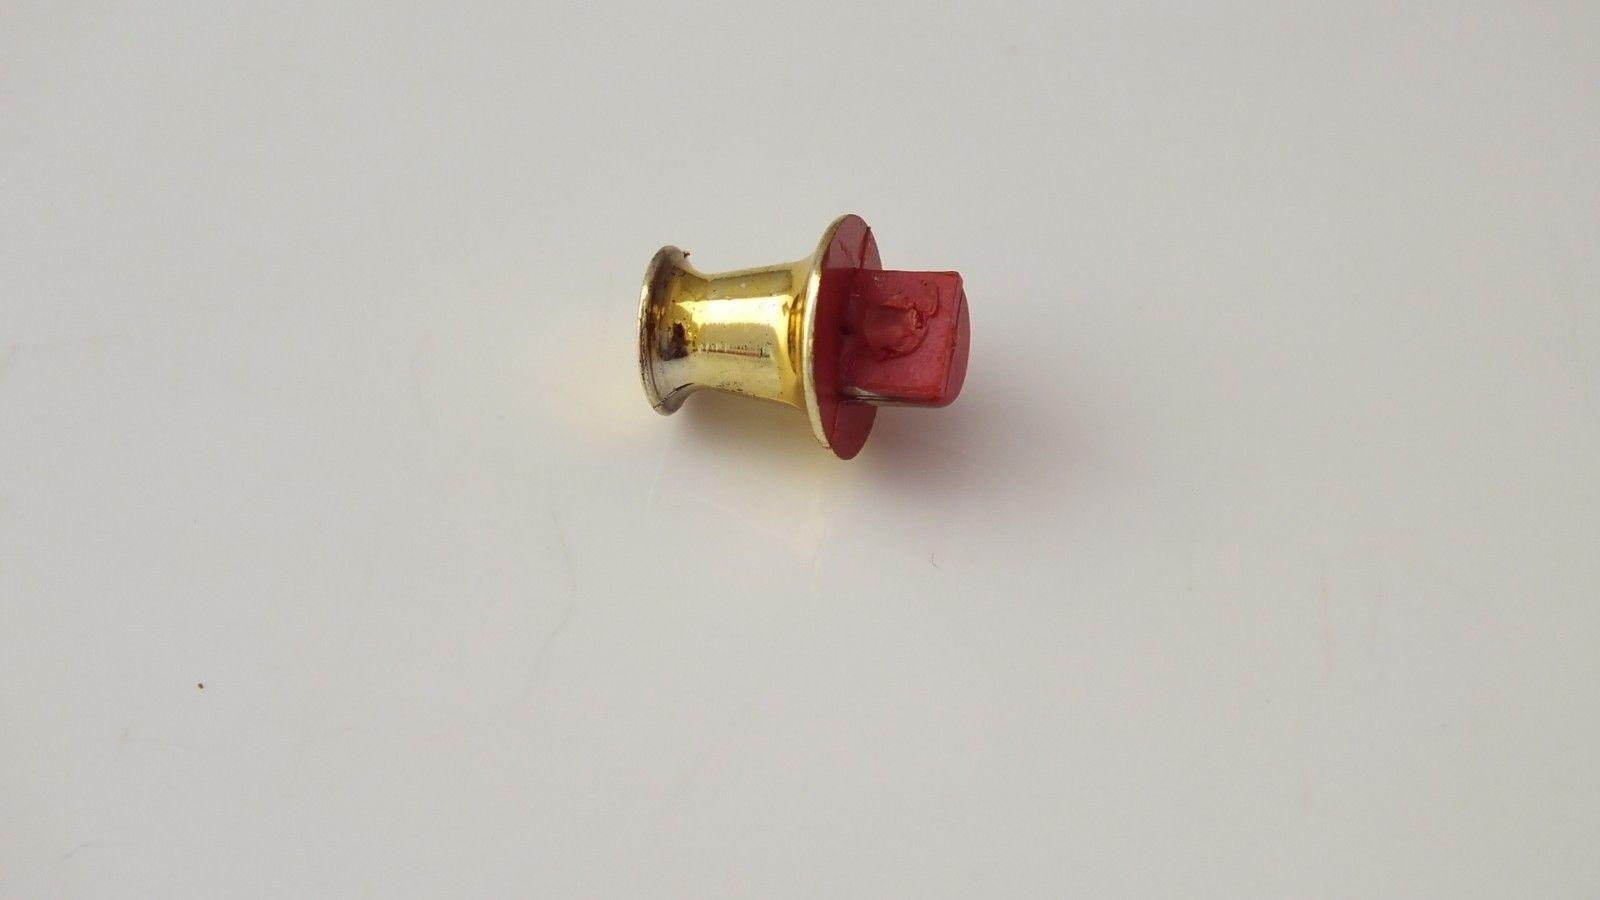 S8525 # HORNBY TRIANG PANIER SAFETY VALVE COVER GOLD    X10A